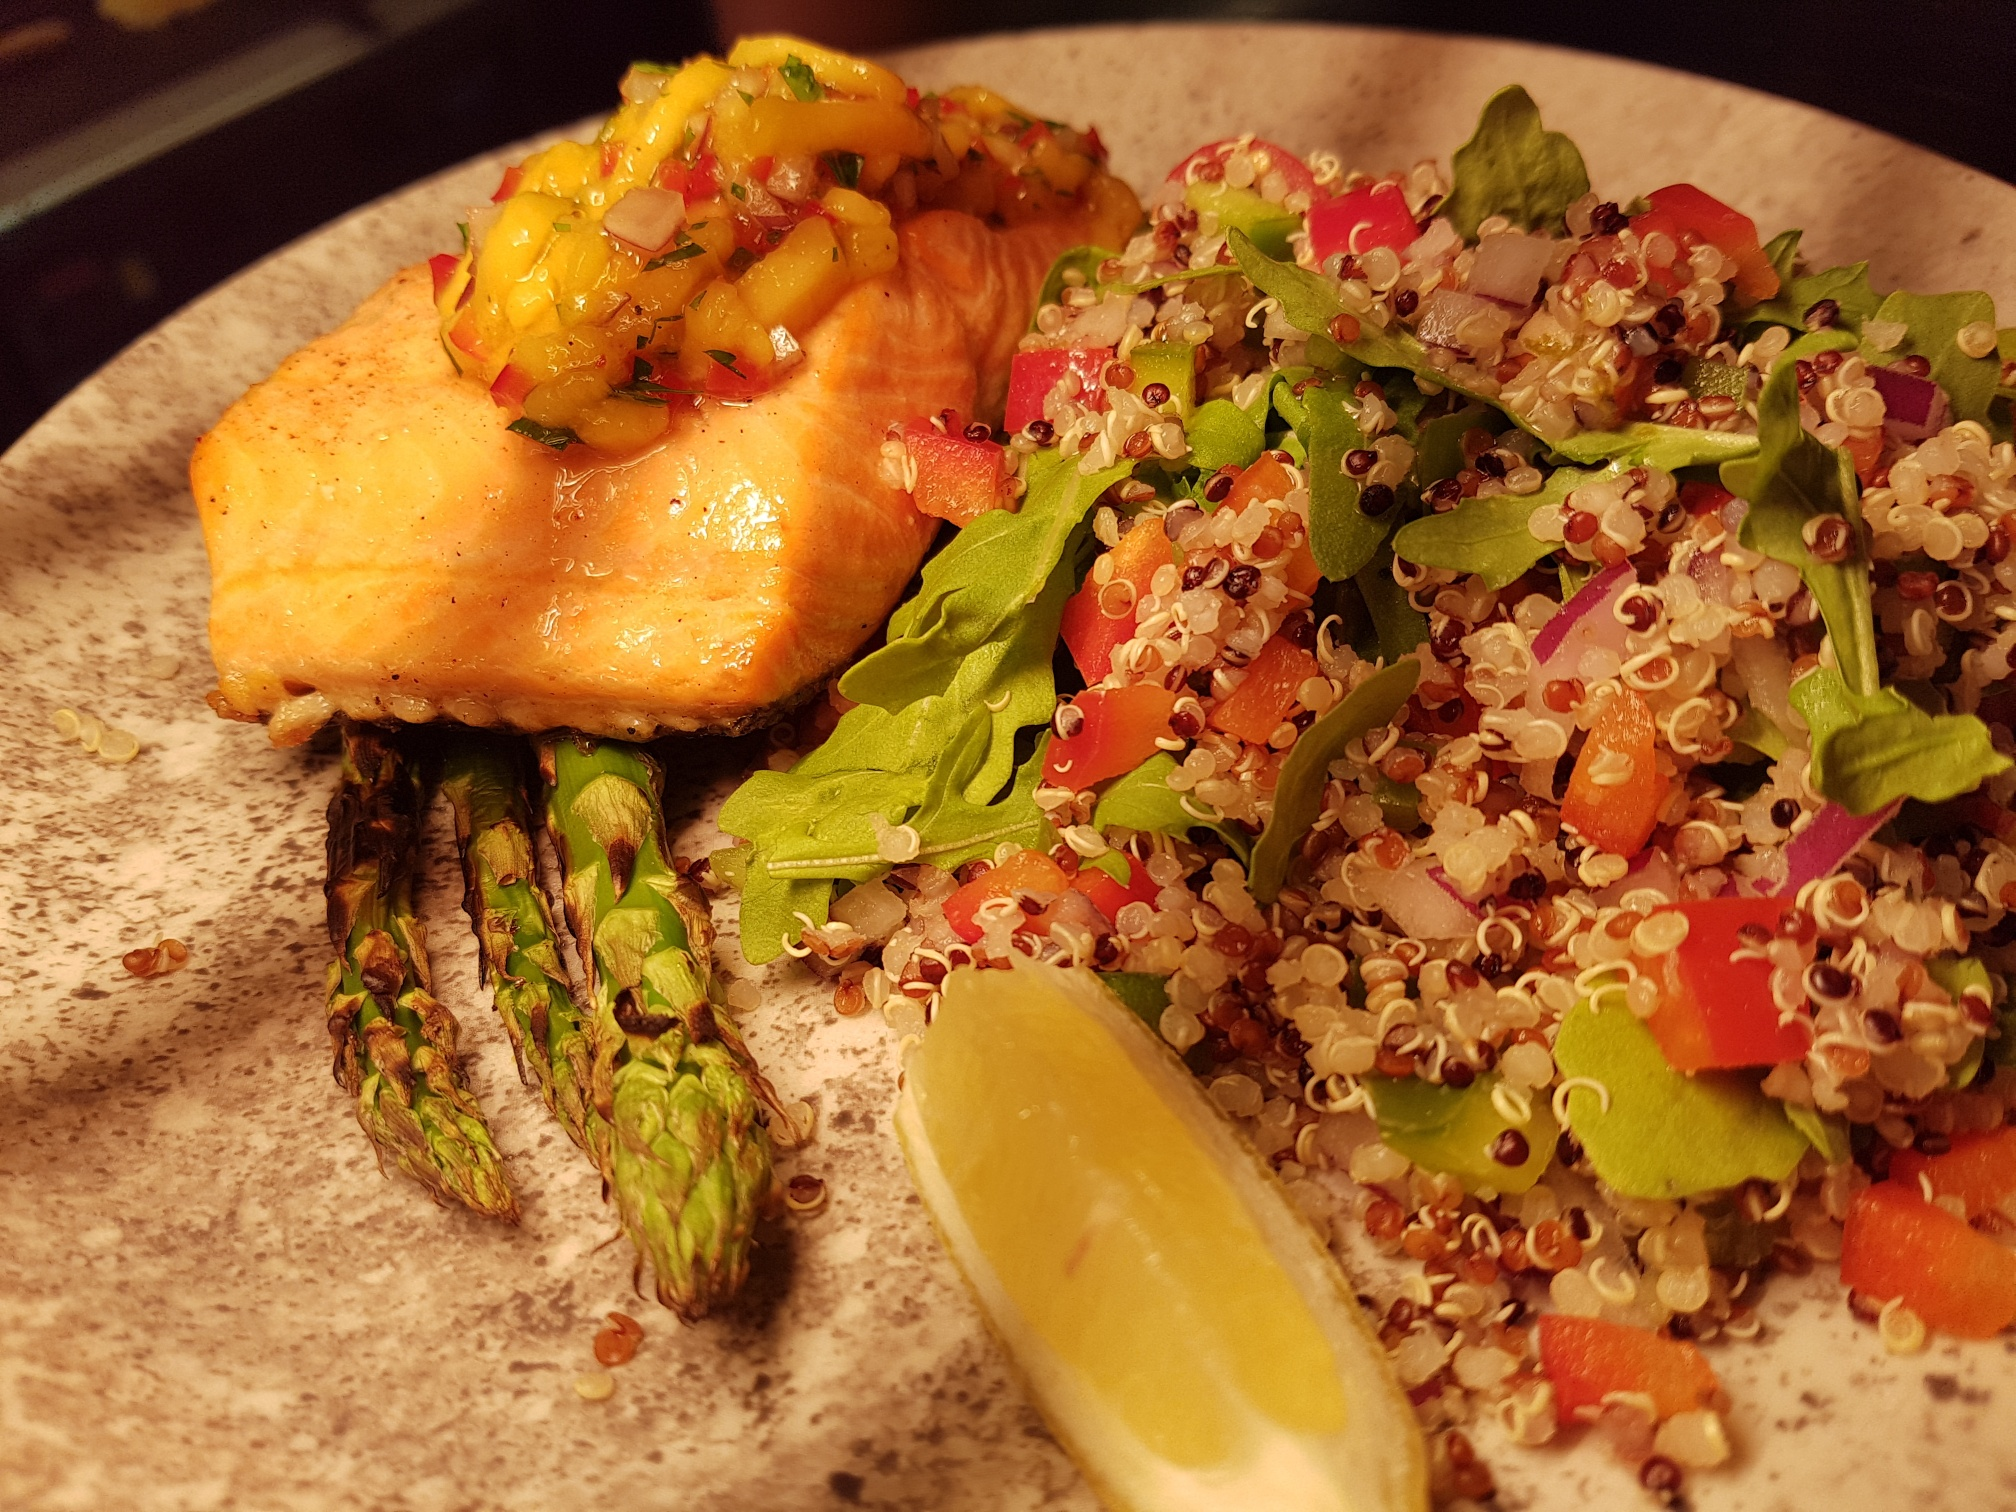 Salmon and quinoa salad